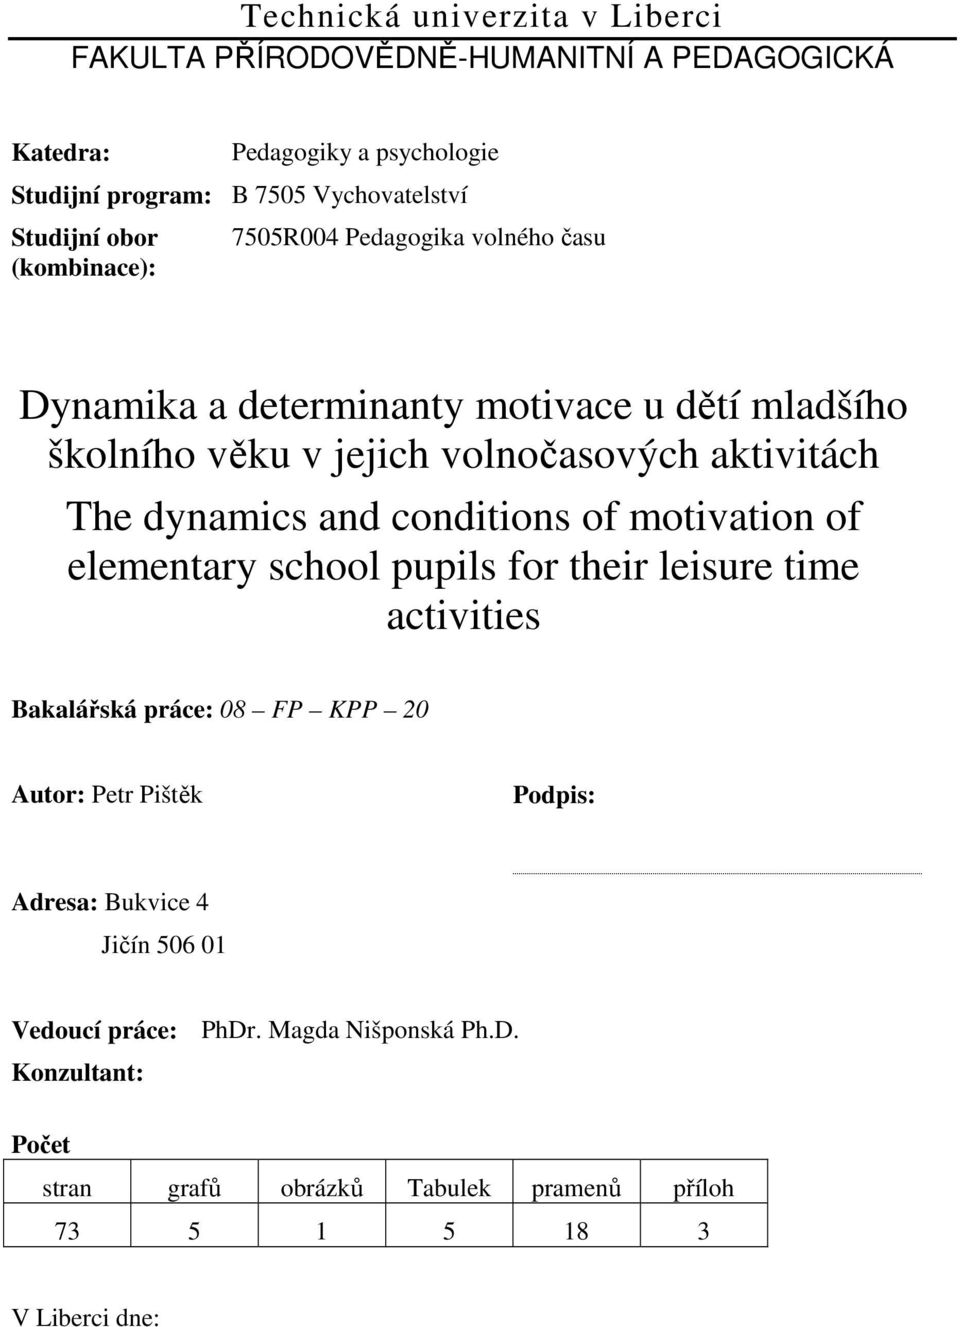 The dynamics and conditions of motivation of elementary school pupils for their leisure time activities Bakalářská práce: 08 FP KPP 20 Autor: Petr Pištěk